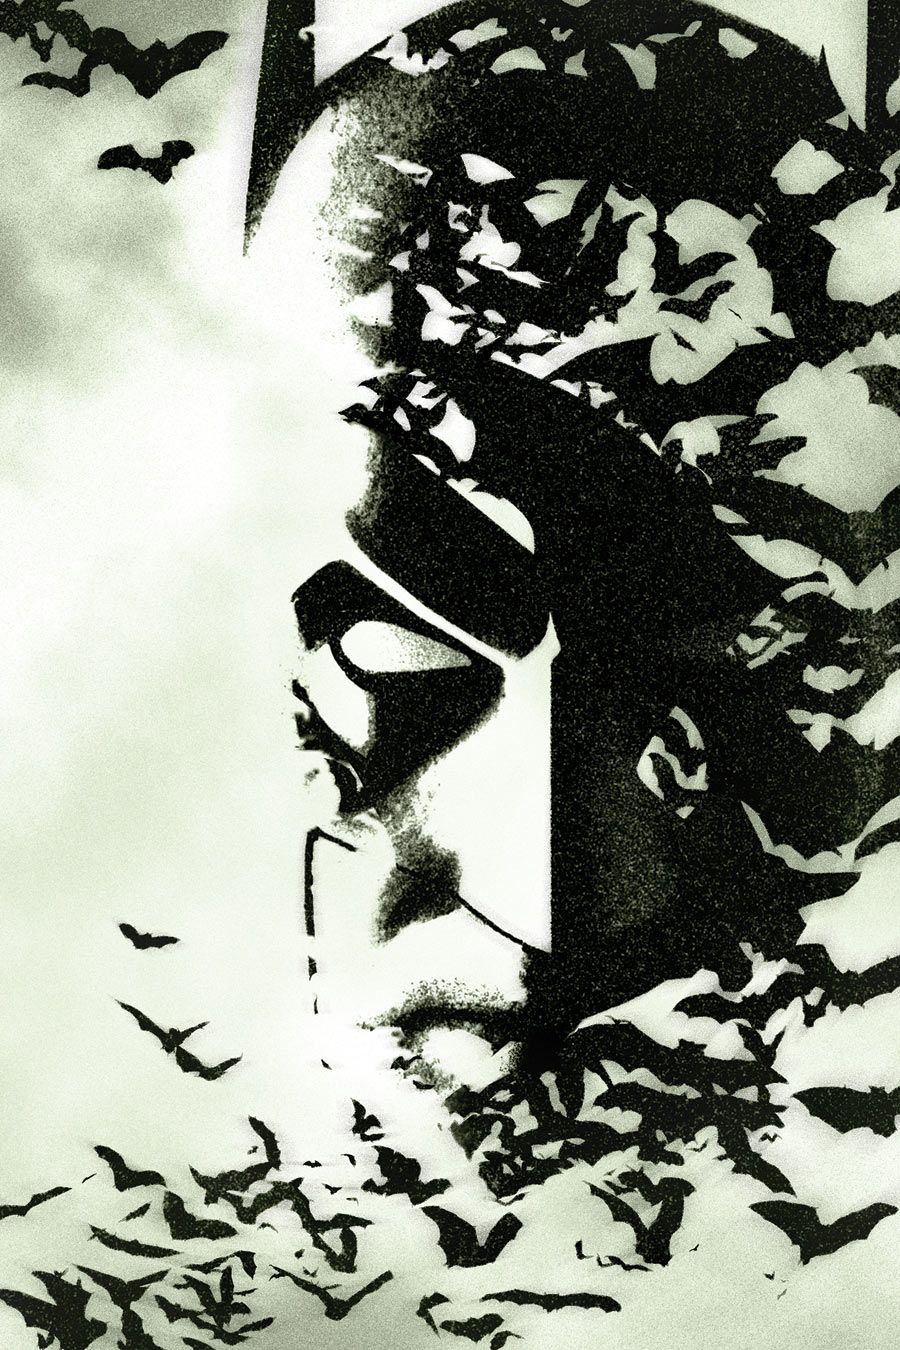 BATMAN BLACK AND WHITE #5 - Written by IVAN BRANDON, KEITH GIFFEN, BLAIR BUTLER, LEN WEIN and JIMMY PALMIOTTI / Art by PAOLO RIVERA, JAVIER PULIDO, CHRIS WESTON, VICTOR IBANEZ and ANDREW ROBINSON / Cover by JOSHUA MIDDLETON | Comic Book Resources